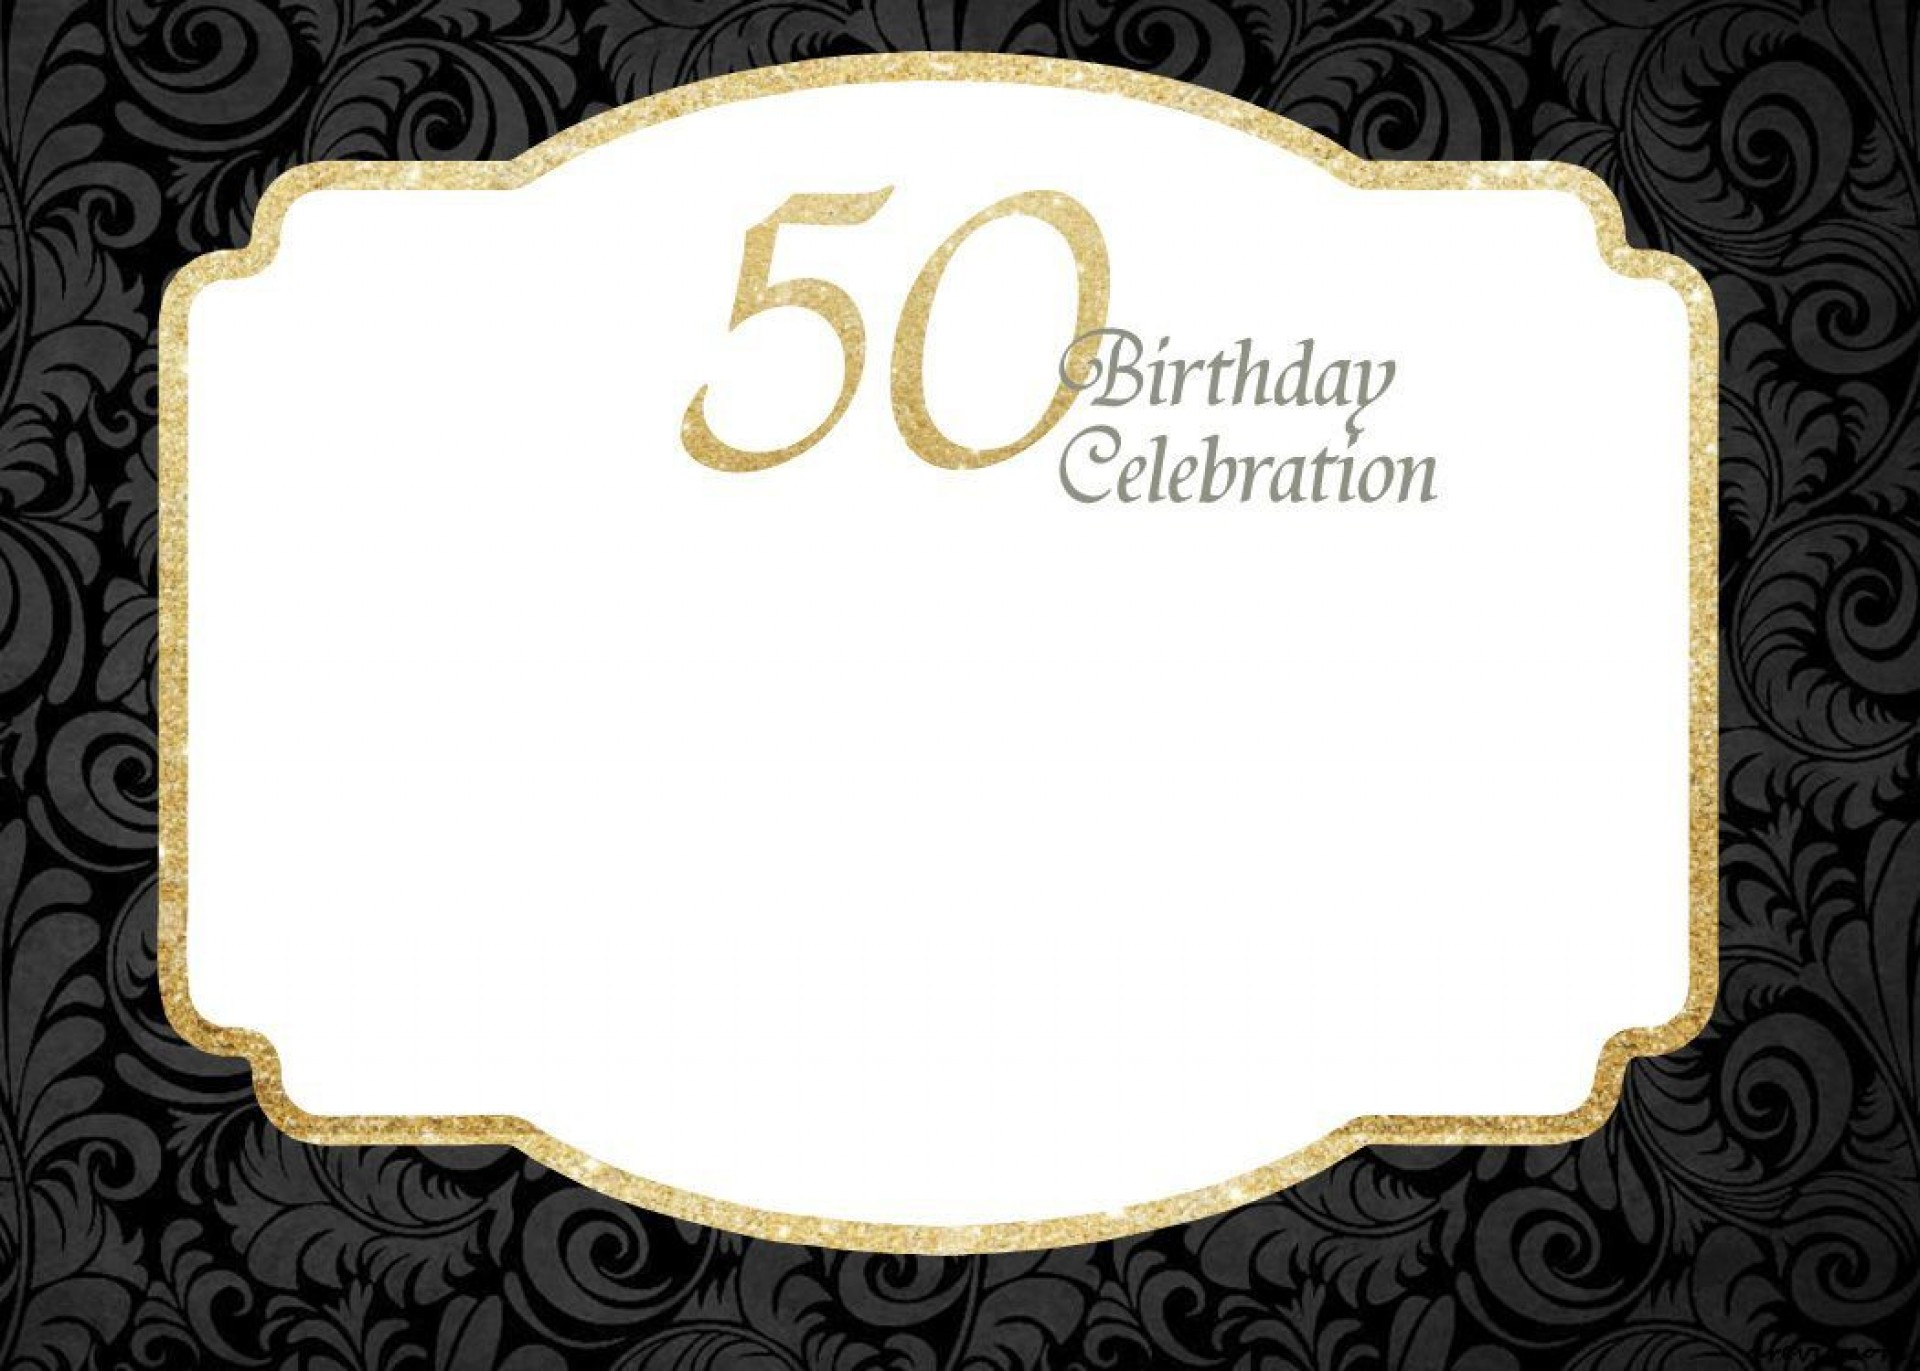 000 Formidable 50th Anniversary Invitation Template Free High Def  Download Golden Wedding1920